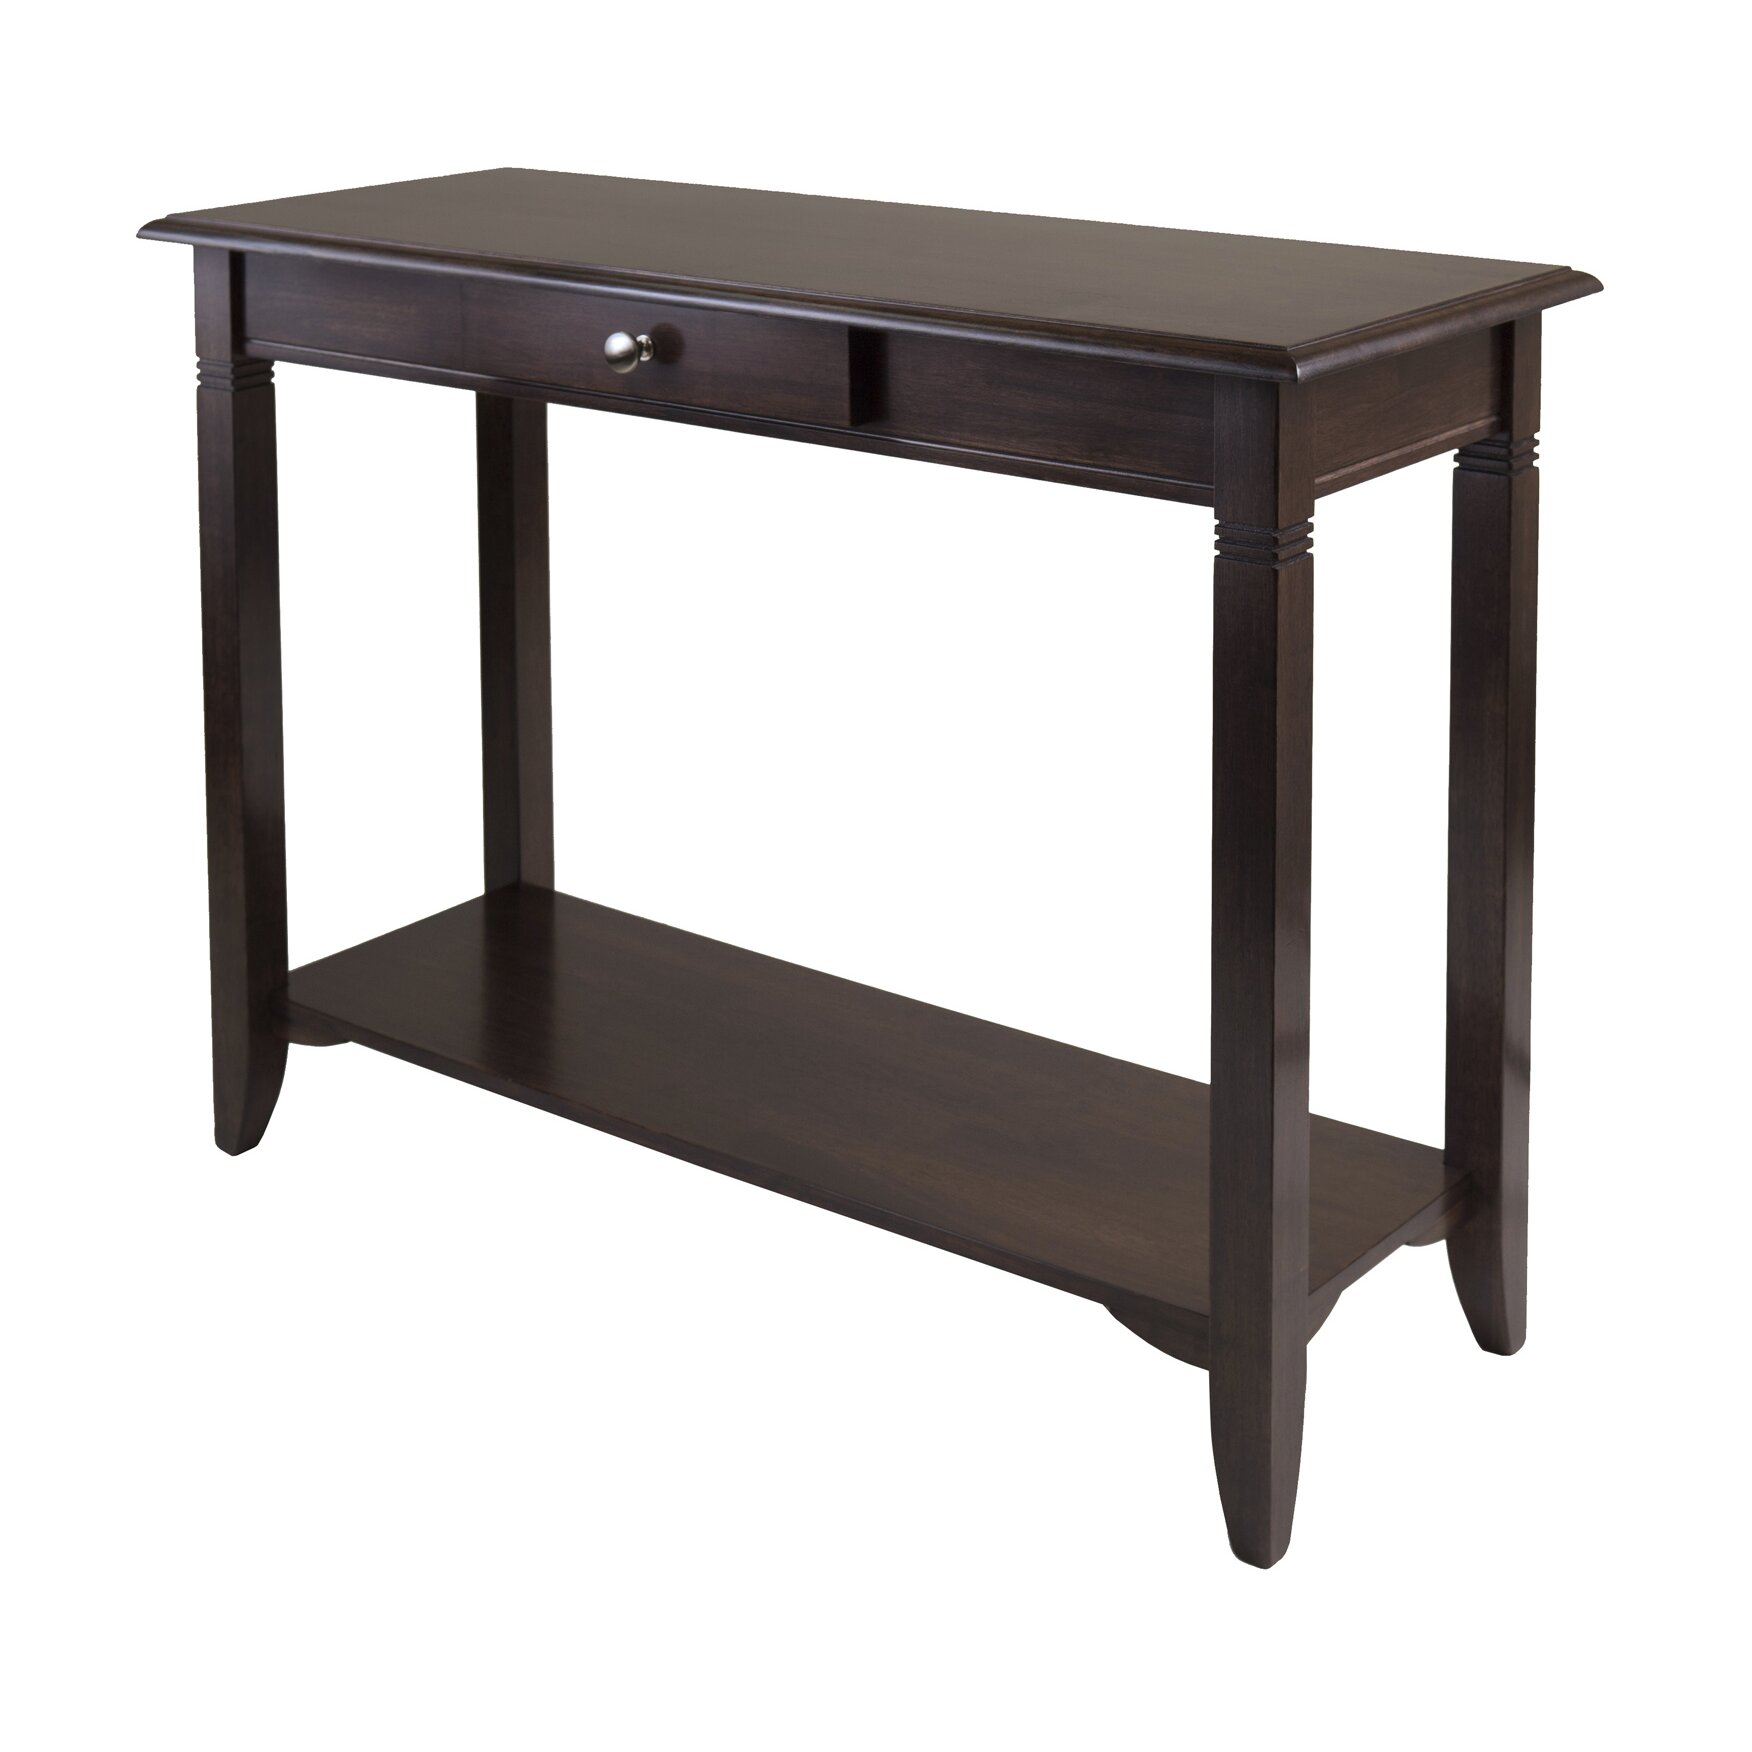 charlton home beckwood console table reviews wayfair. Black Bedroom Furniture Sets. Home Design Ideas